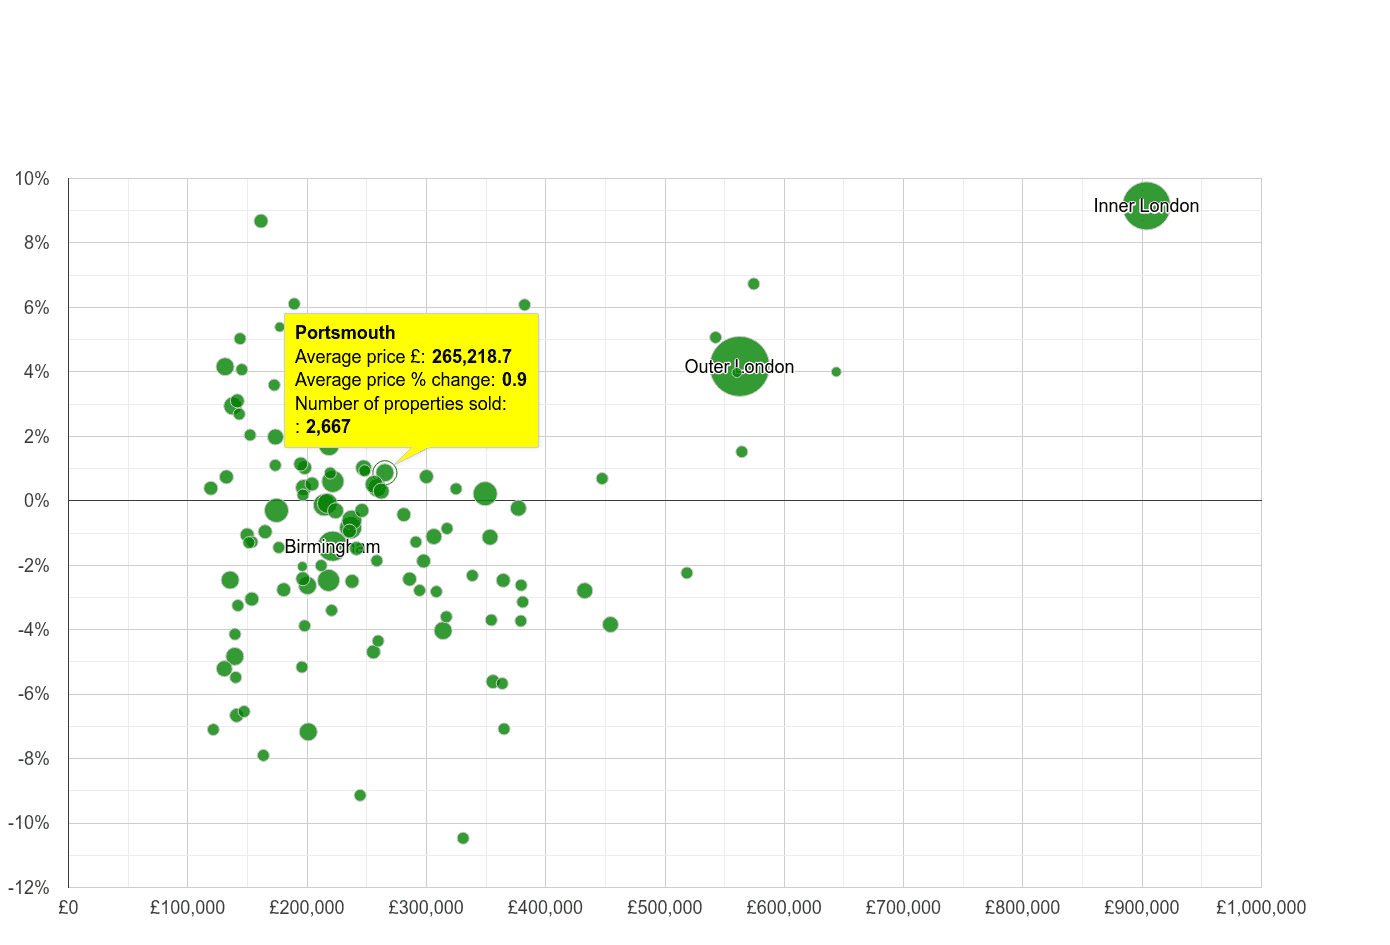 Portsmouth house prices compared to other cities